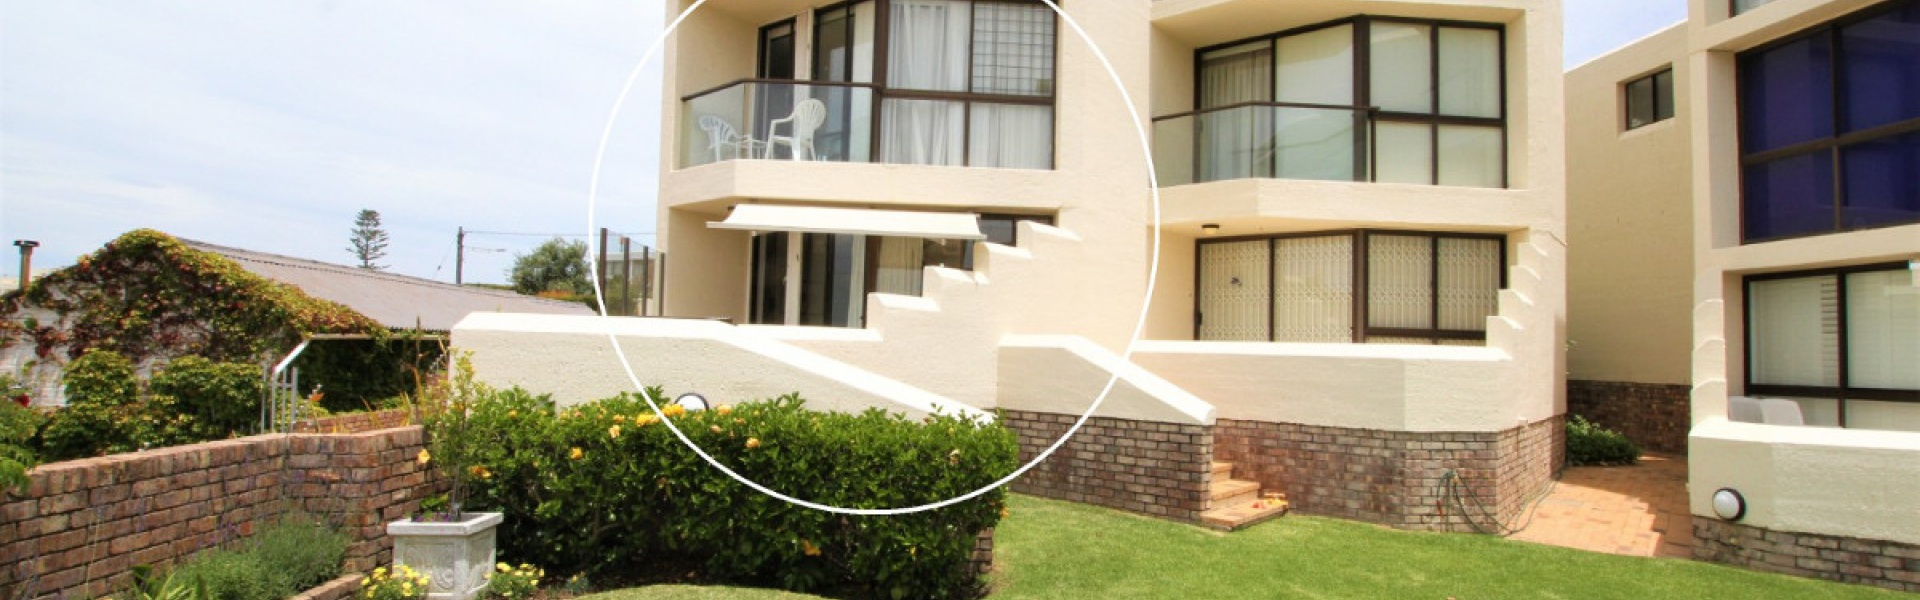 Plettenberg Bay, 6600, 3 Bedrooms Bedrooms, ,2 BathroomsBathrooms,Apartment,For Sale,1060